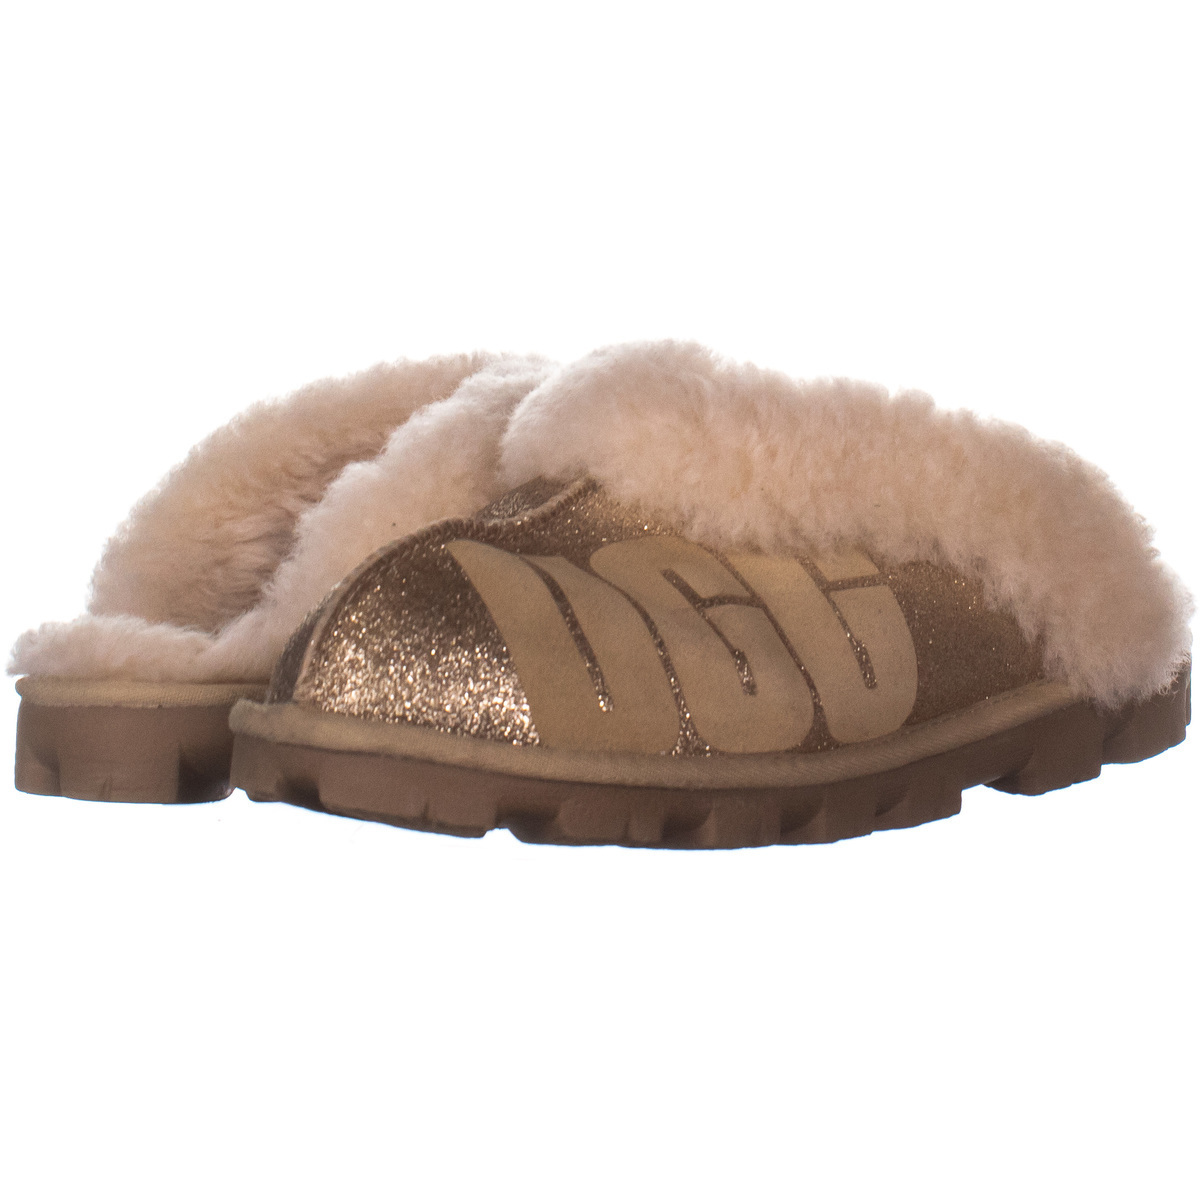 6a1018028d2 Cole Haan Slipper: 9 listings